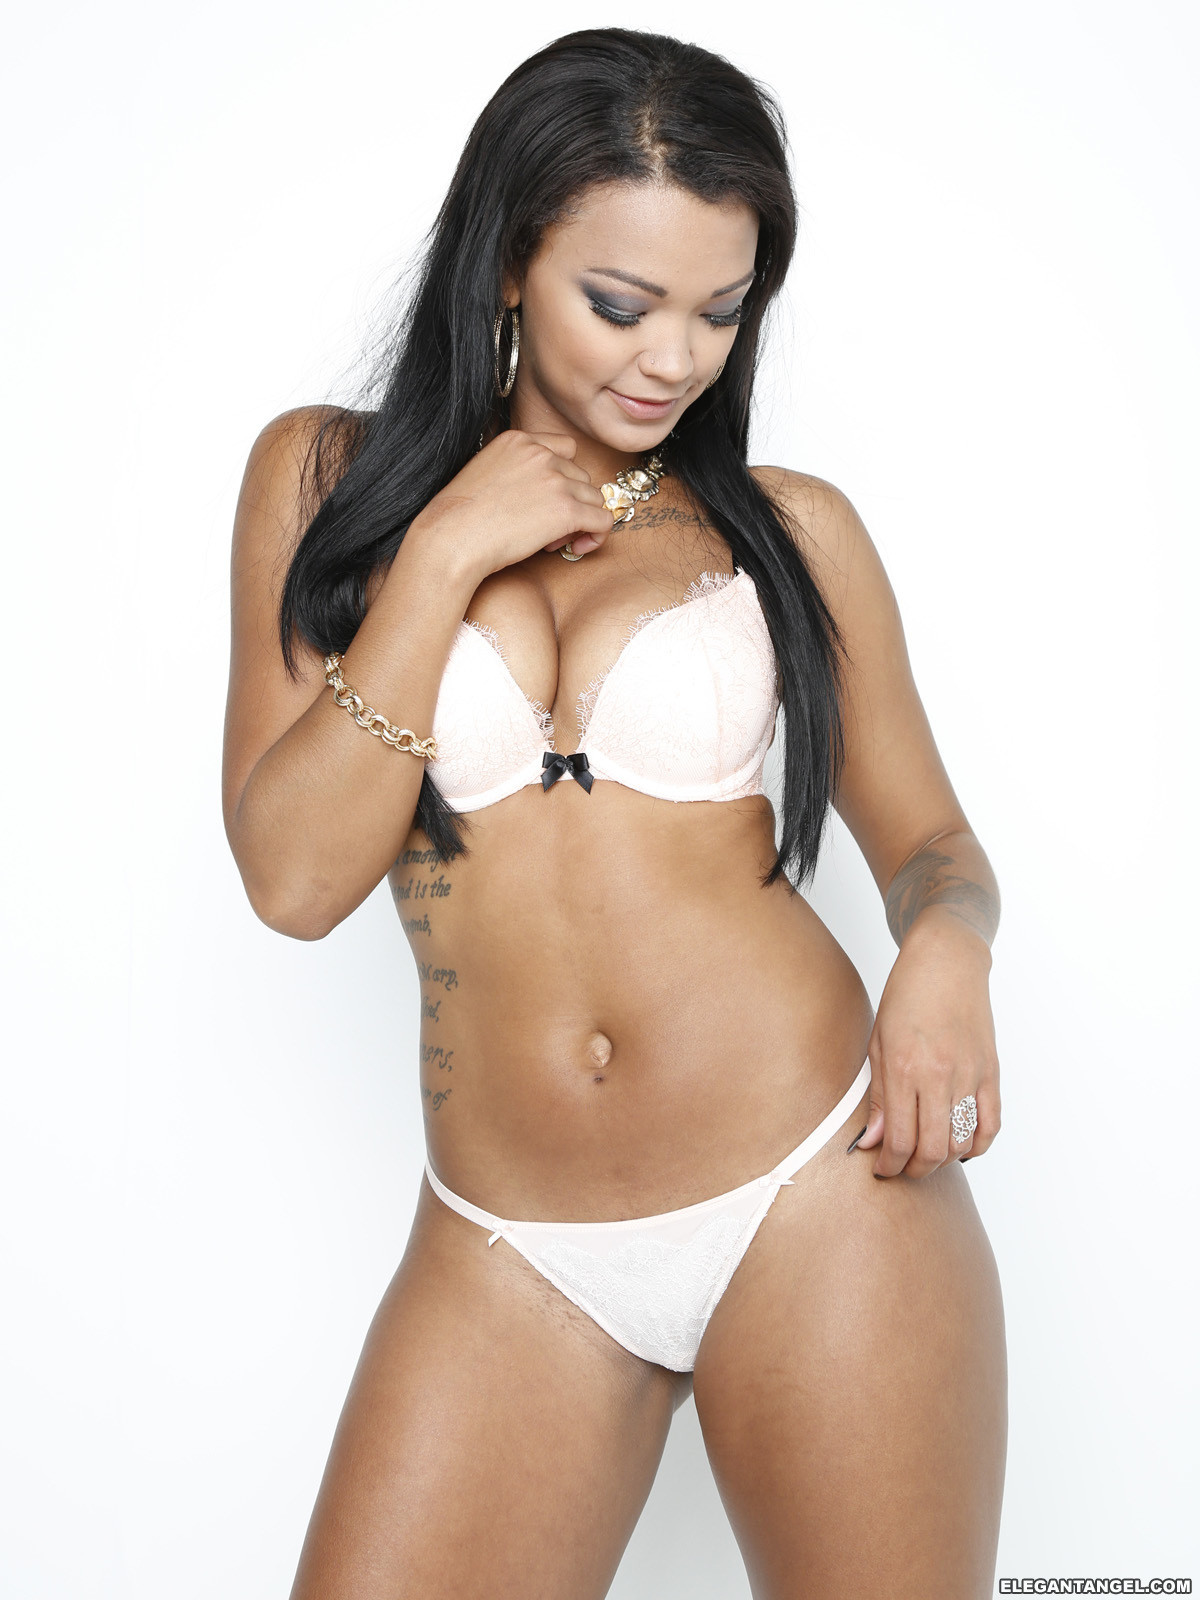 Harley Dean And Skin Diamond - Ready To Get Freaky 55136-4123